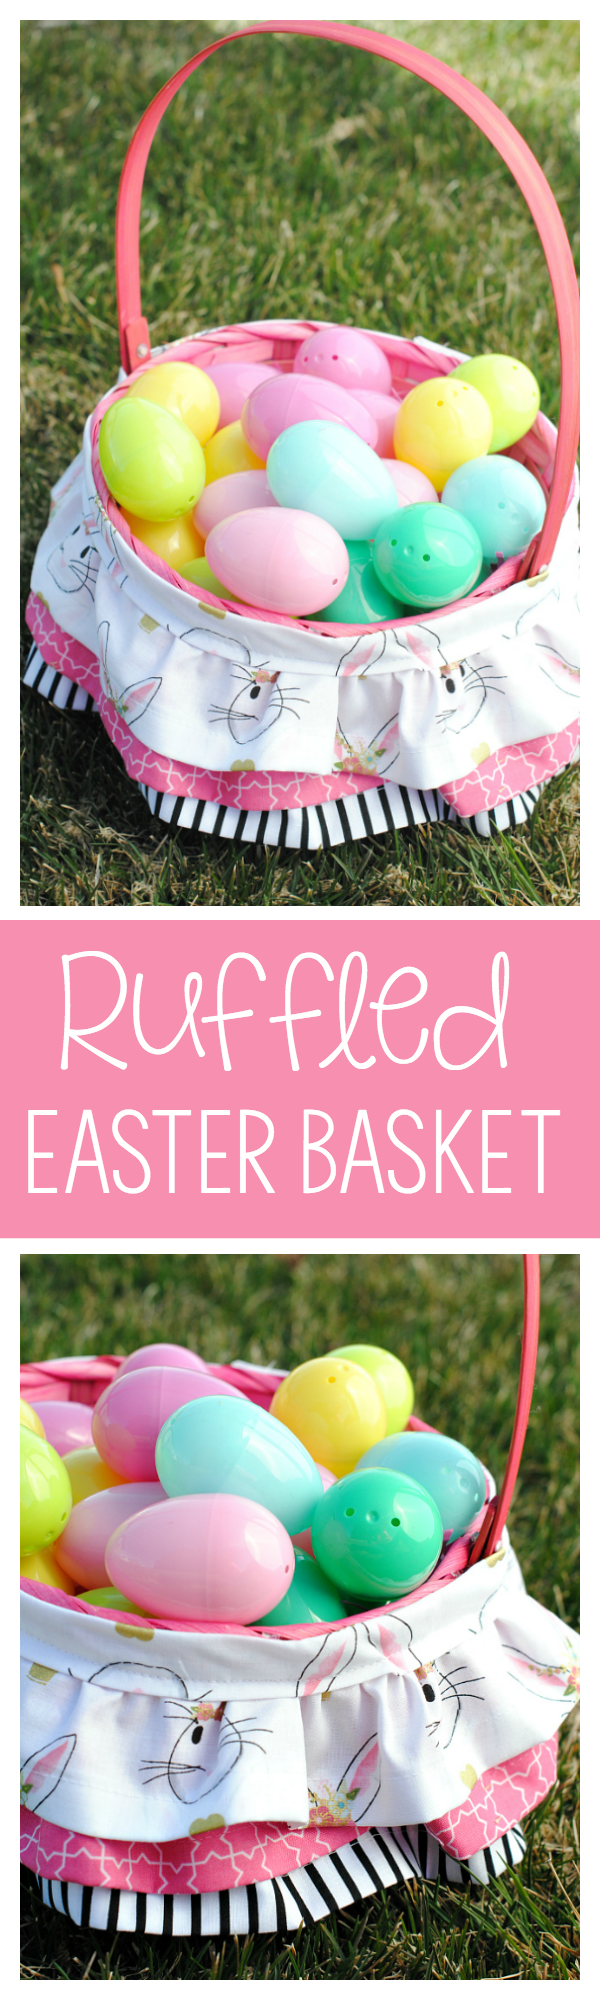 Cute Ruffled Easter Basket